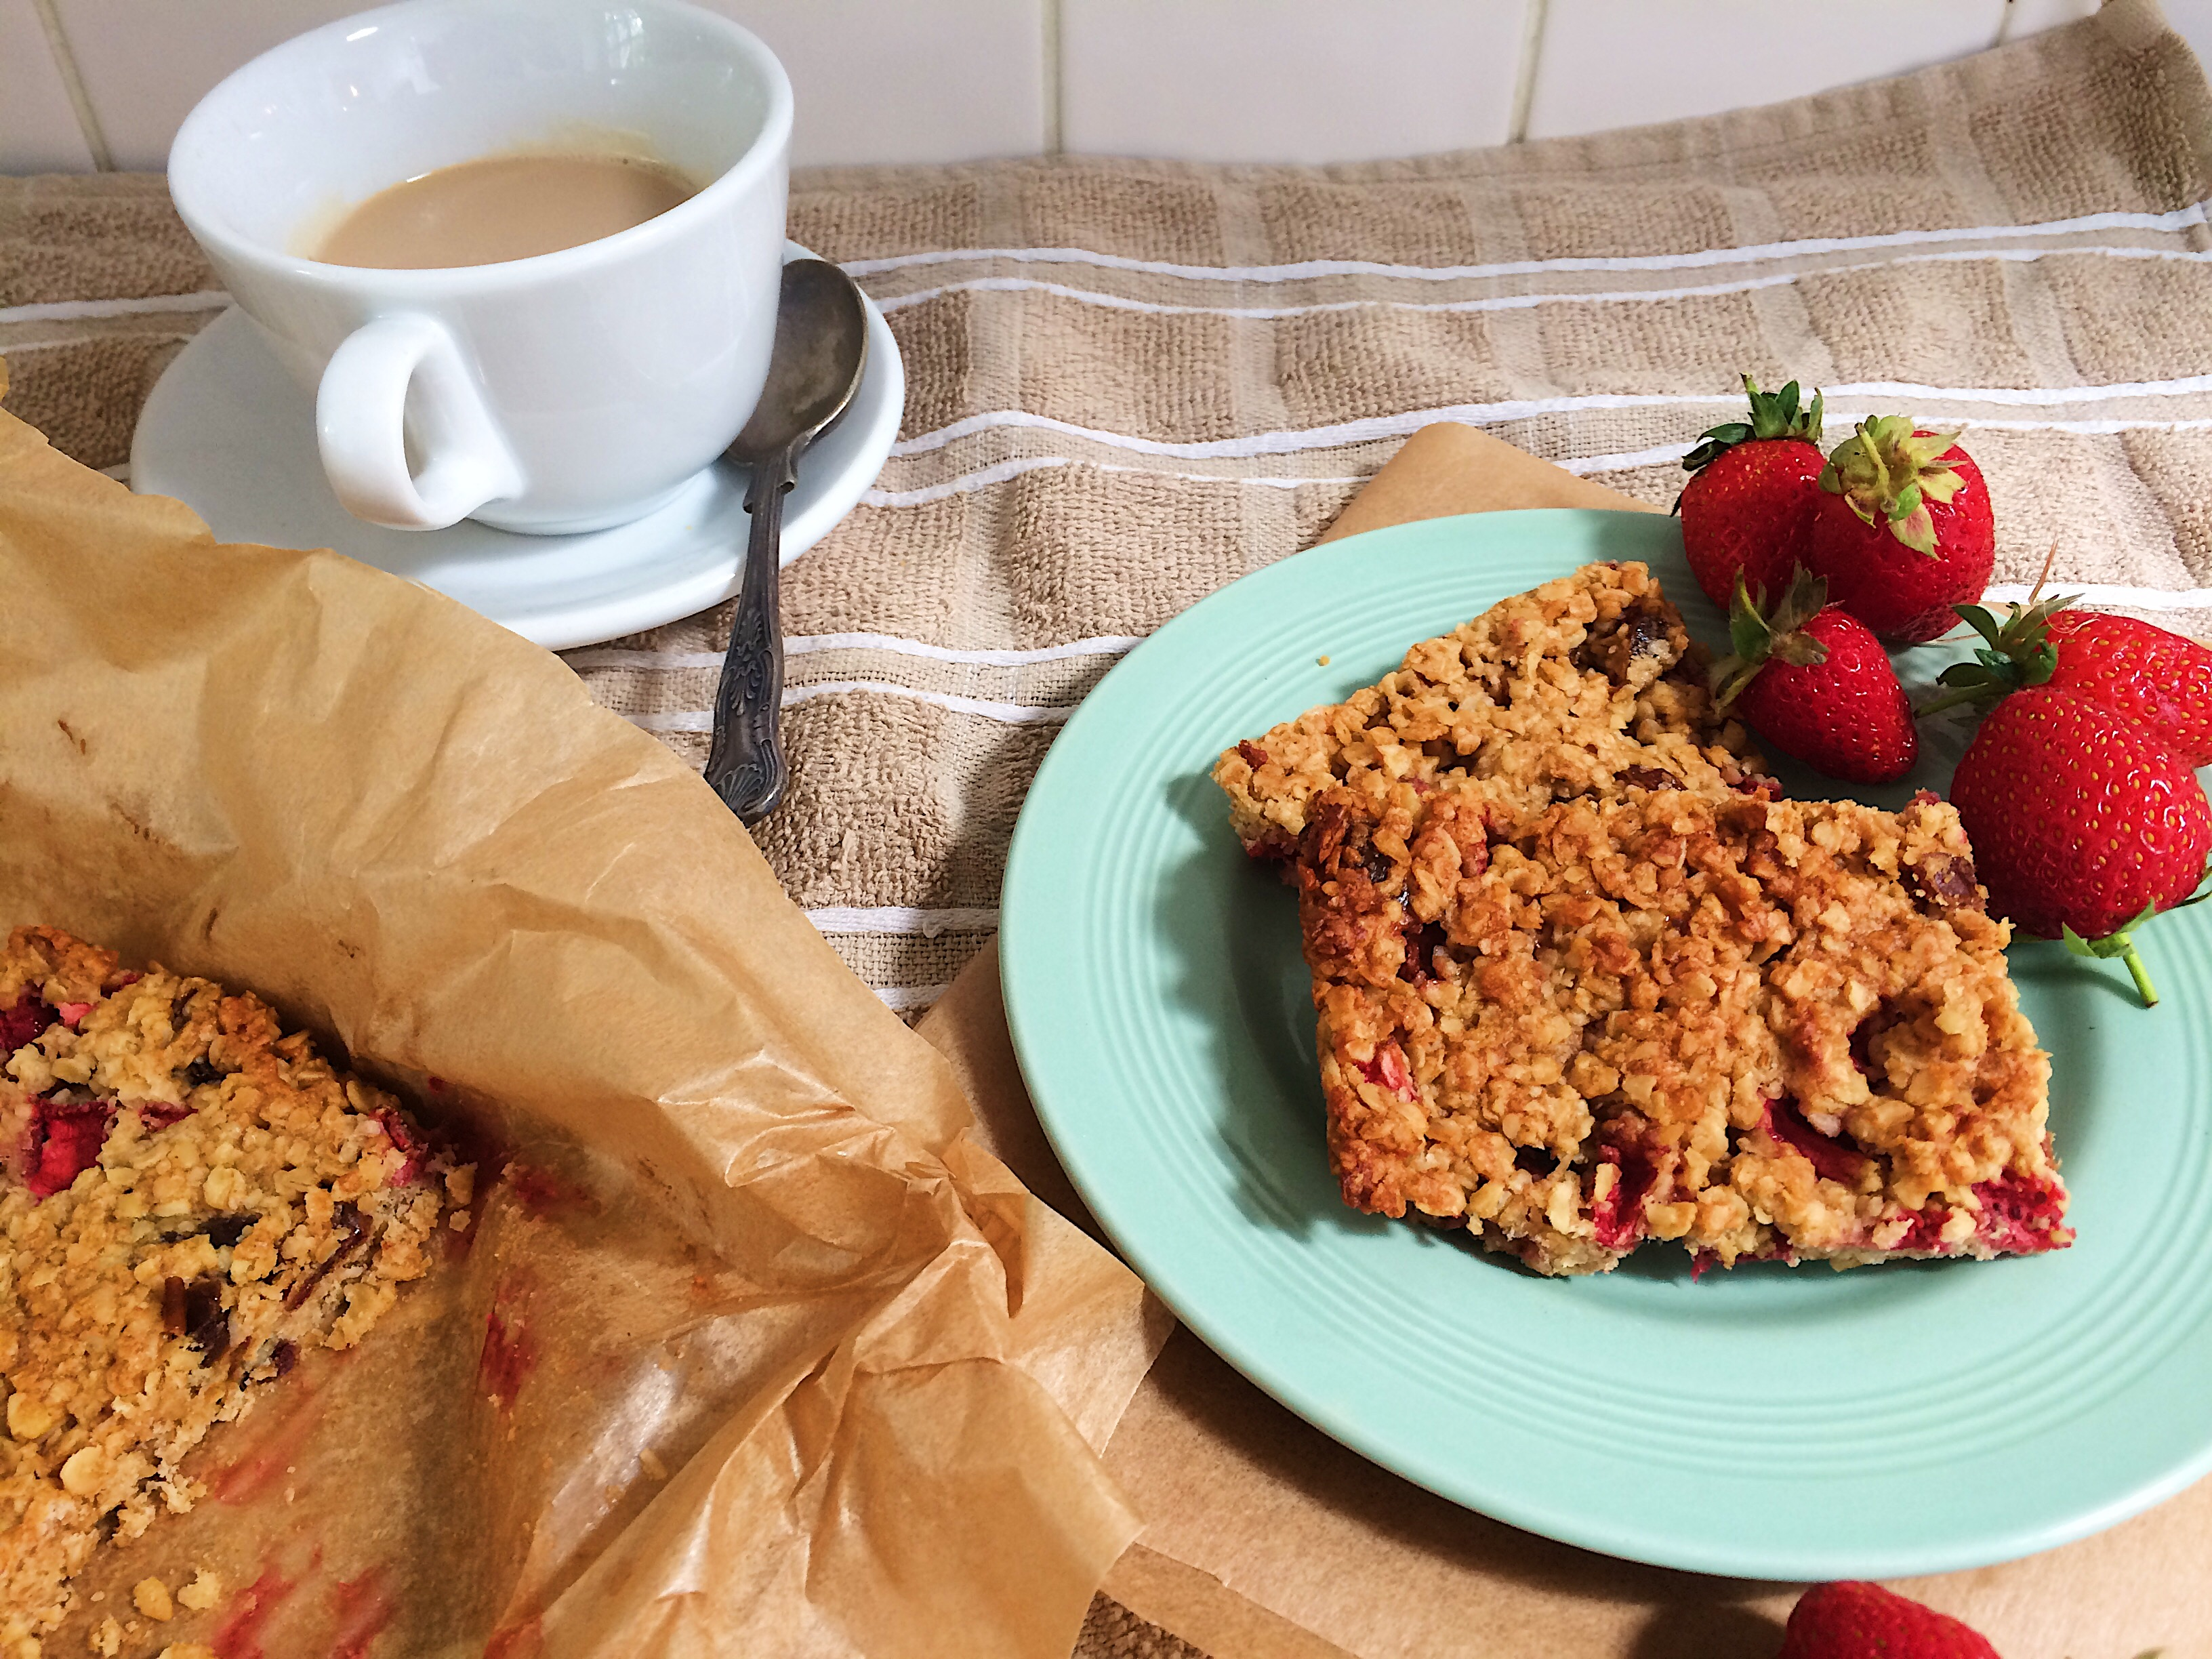 Strawberry Peanut Butter Flapjacks